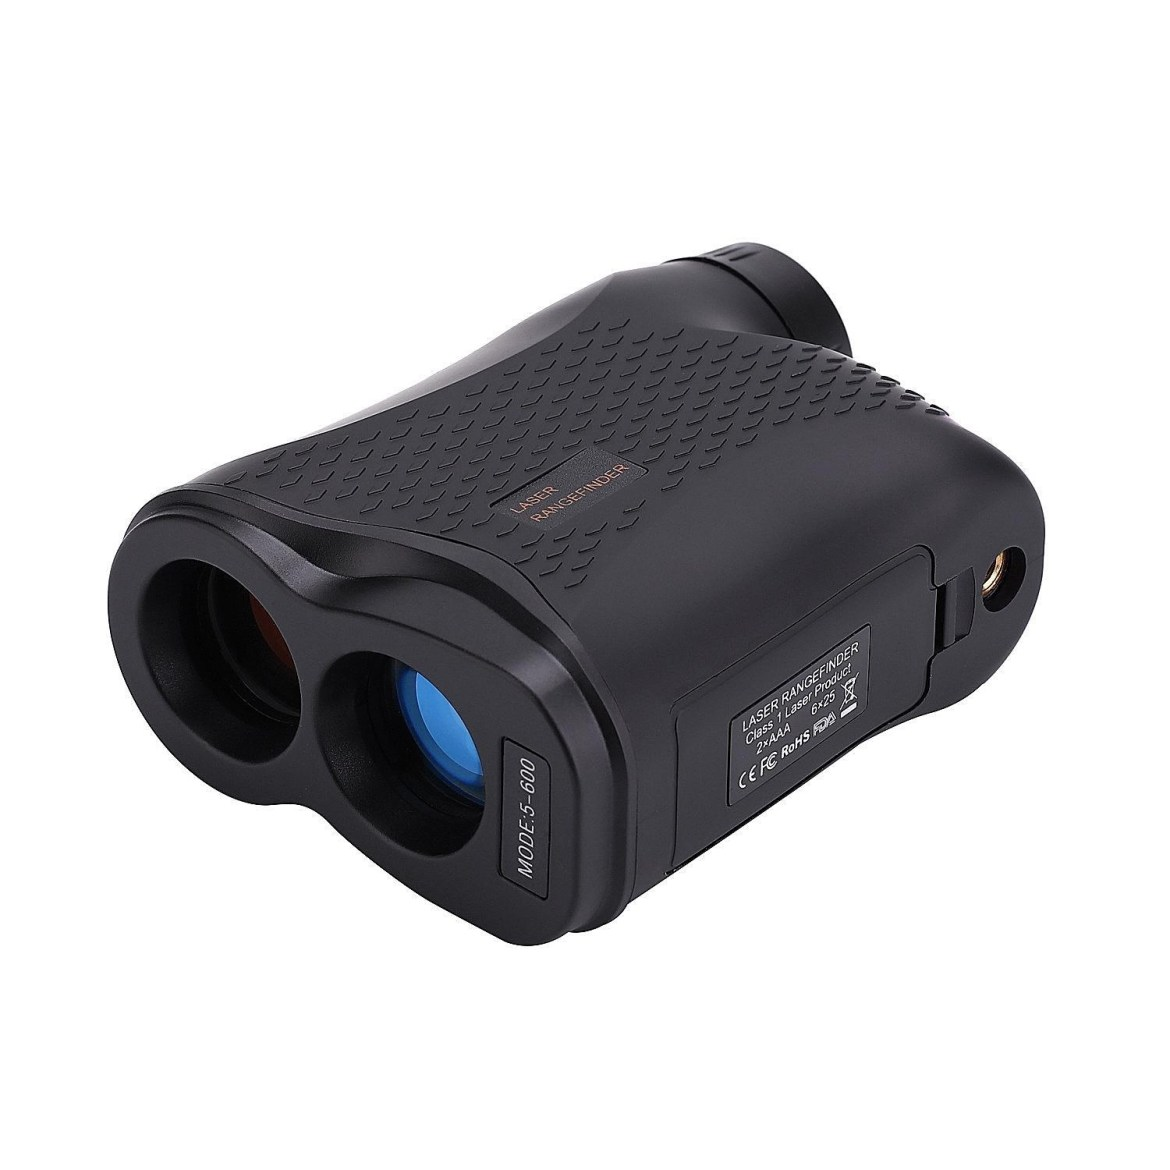 3b8ab6a9b9c3730b54c038e92d2f4bd9 Louis Will DEKO Laser Rangefinder For Hunting And Golf   Laser Range Finder With Fog ,Scan, Speed Measurement, Free Battery